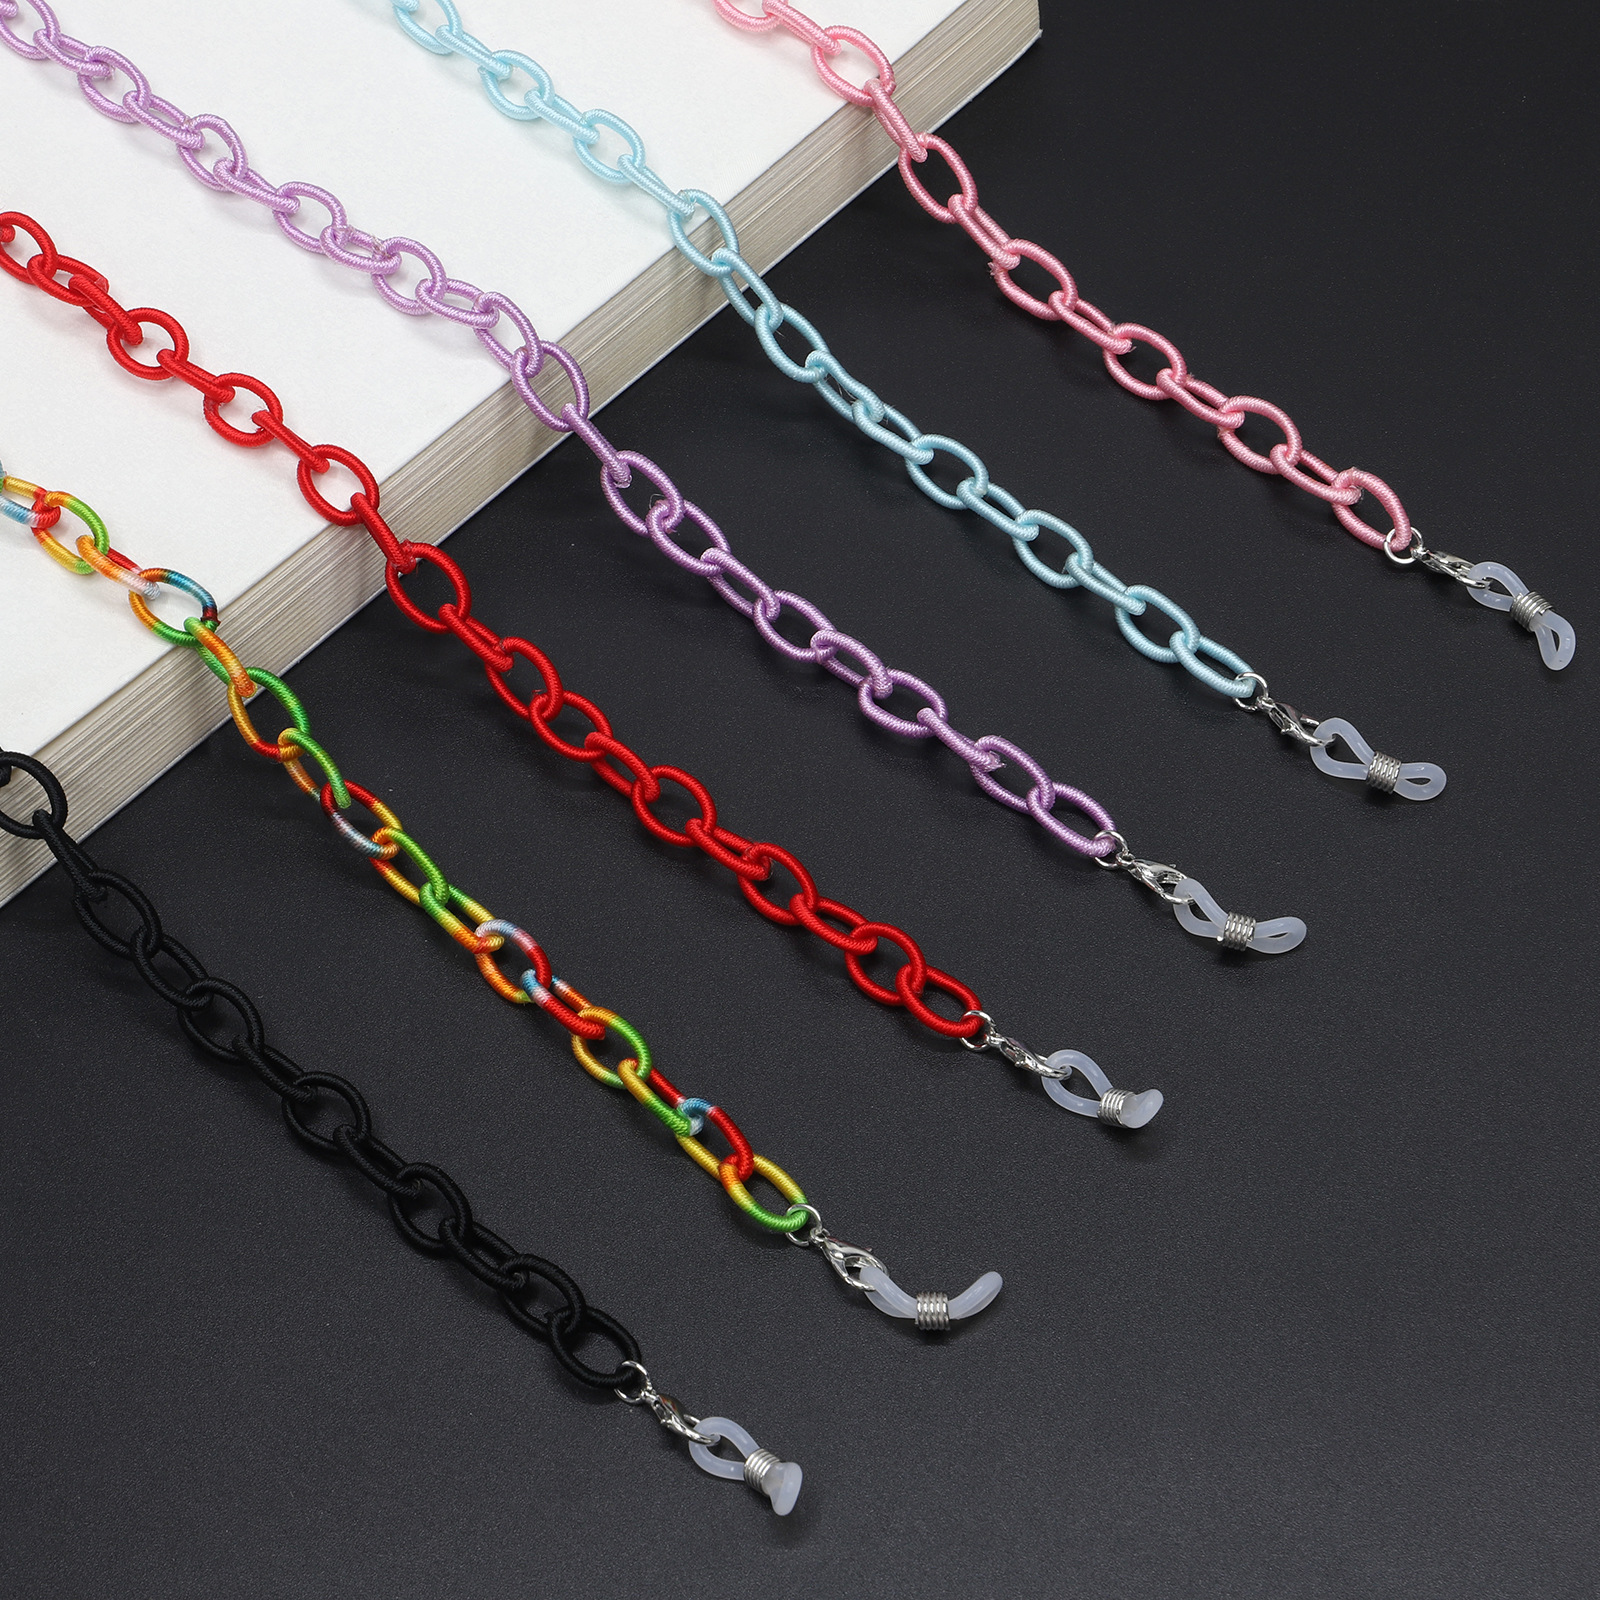 90cm Long Glasses Chain For Women Reading Glasses Hanging Neck Rope Sunglasses Chain & Largands Strap Fashion Accessories